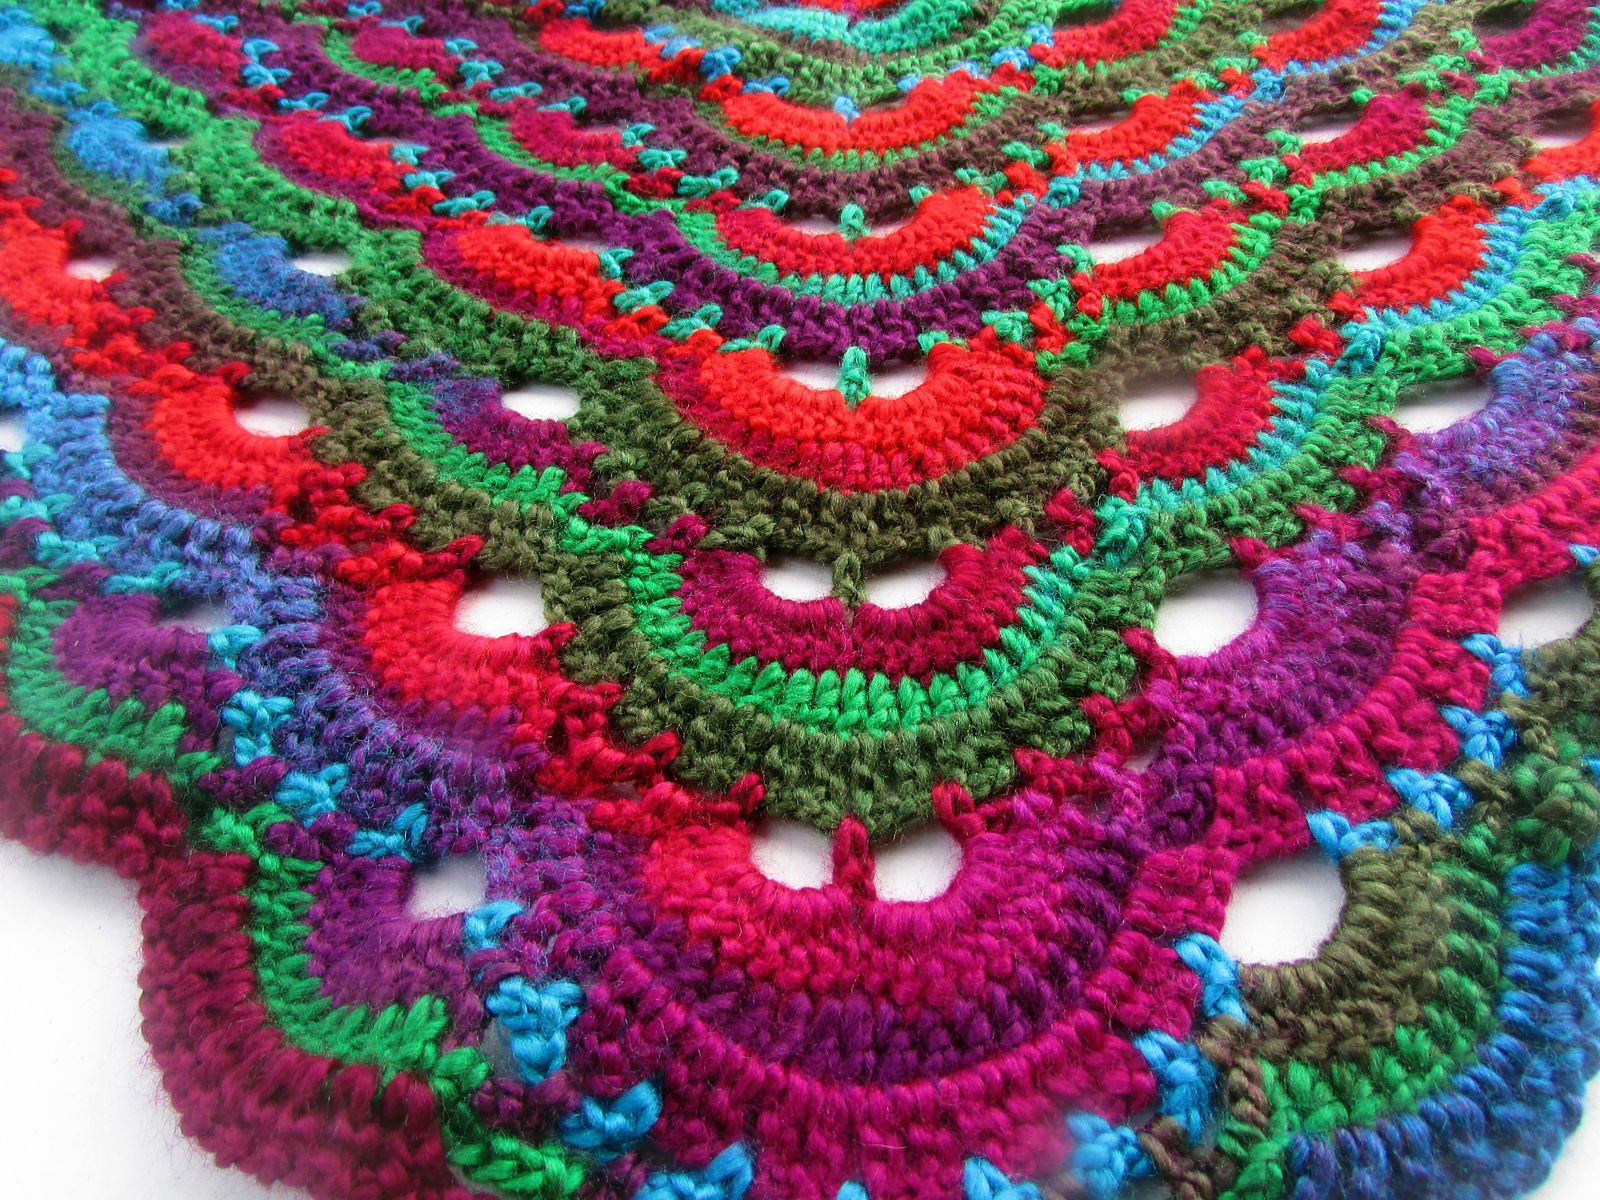 Ravelry: Virus shawl / Virustuch by Julia Marquardt | Crochet ...